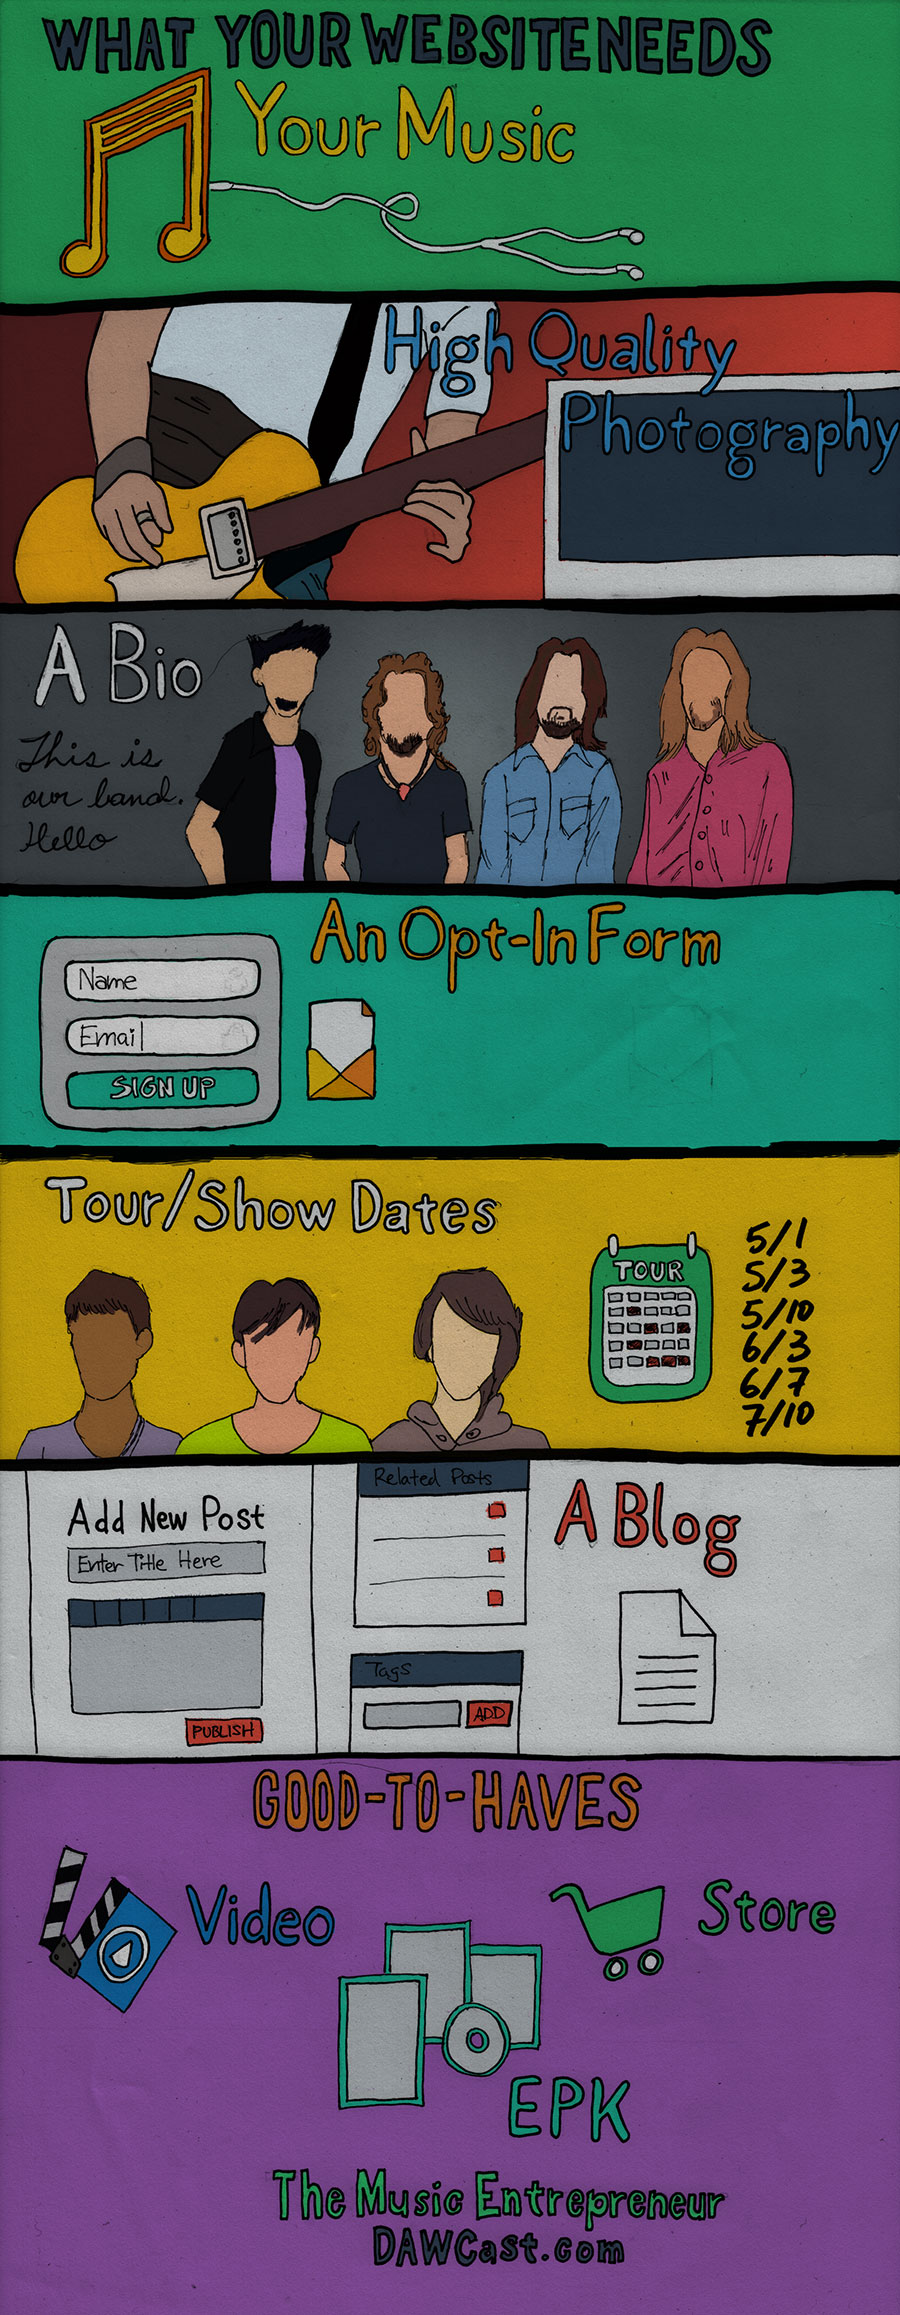 What Your Website Needs [INFOGRAPHIC]